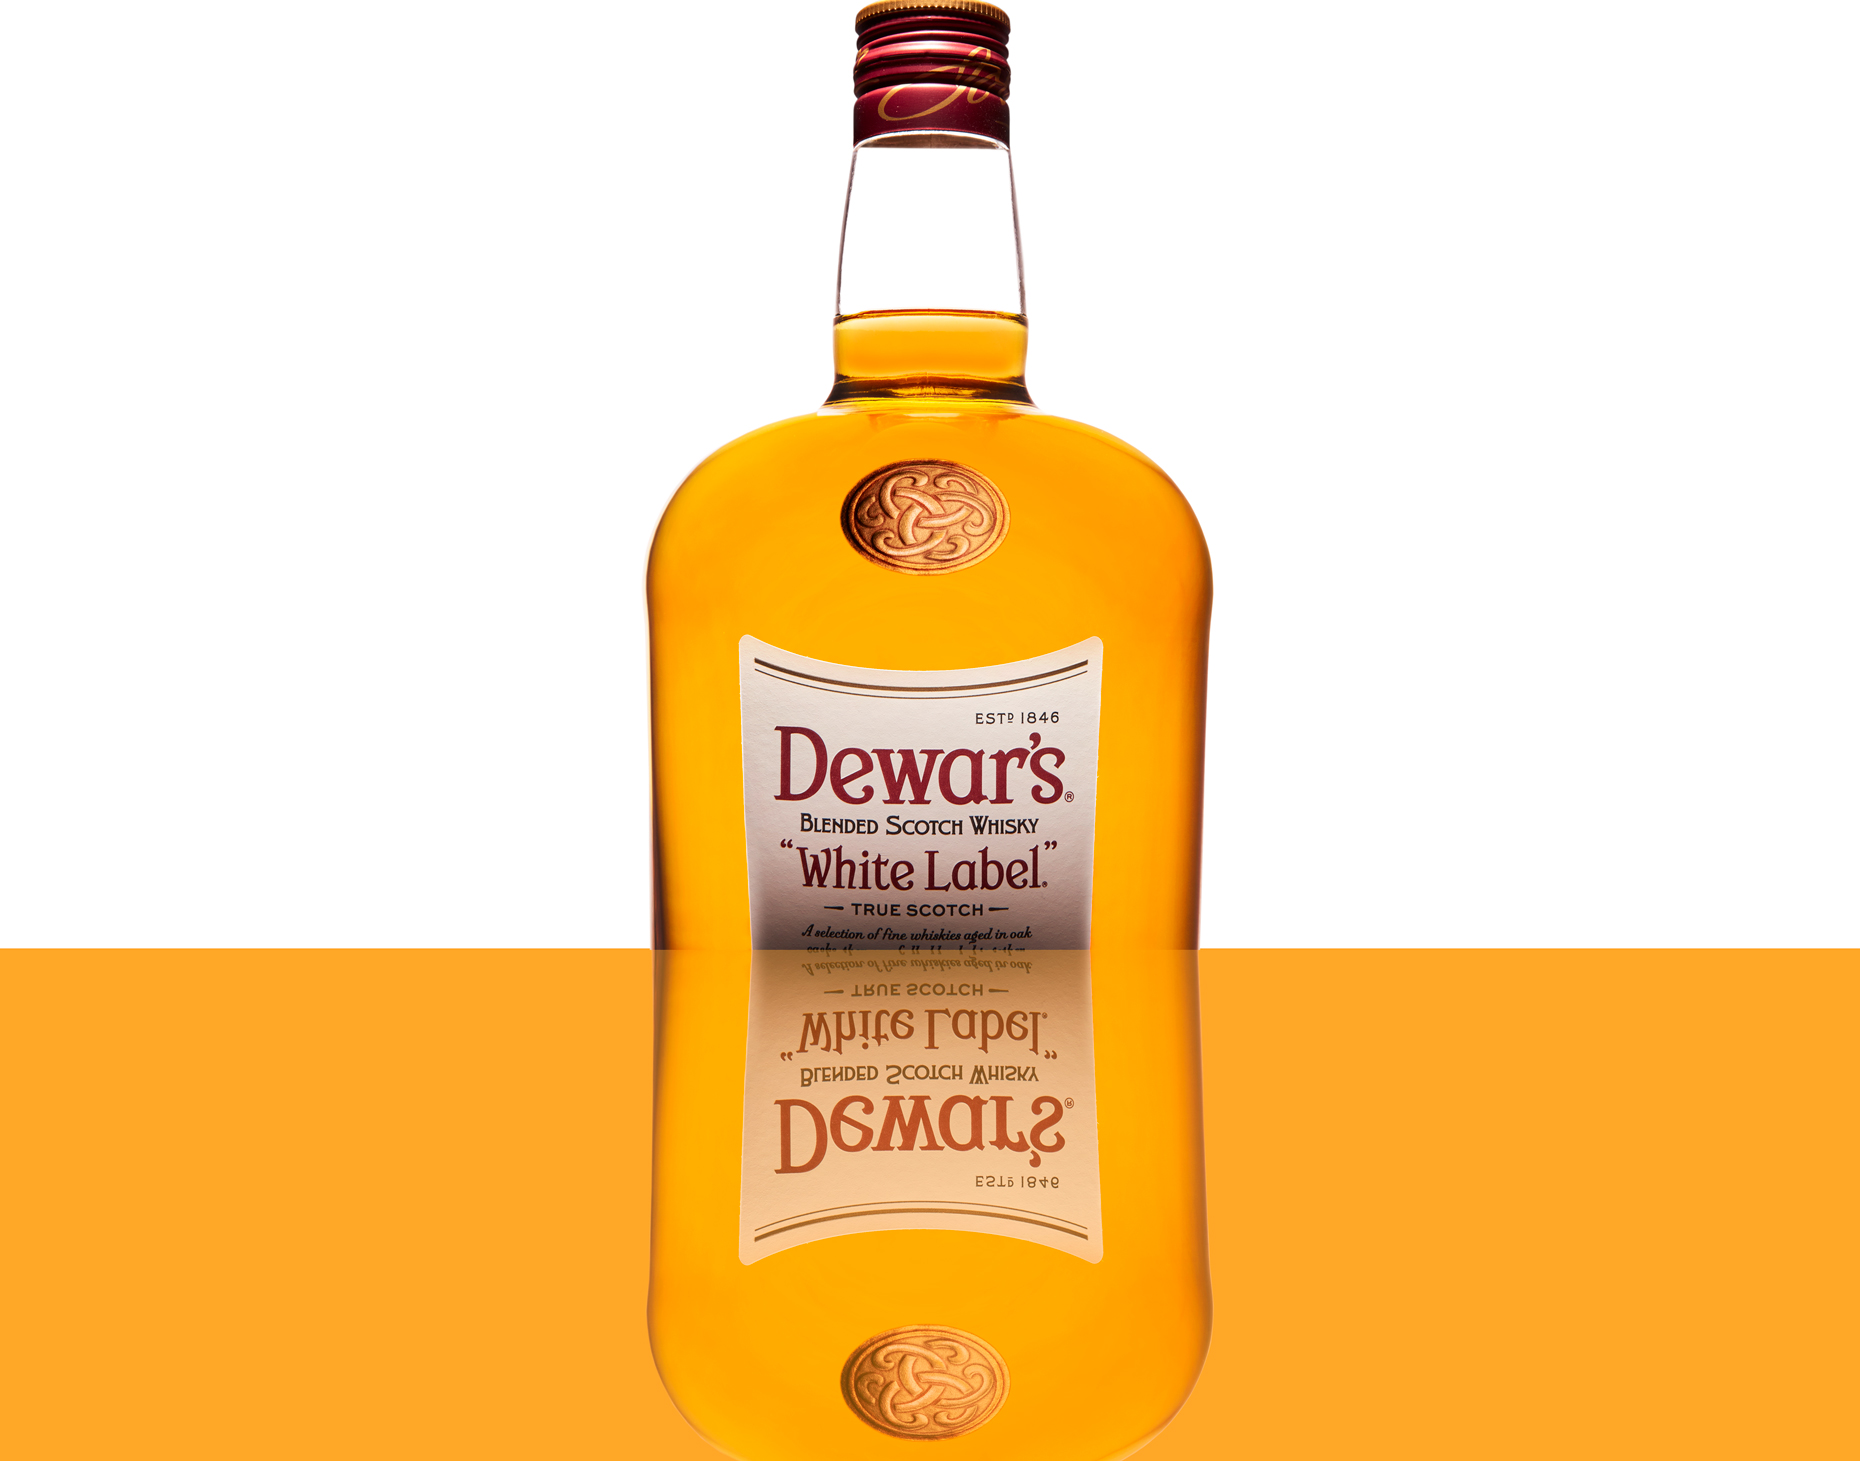 dewars-gold-reflection-good-color